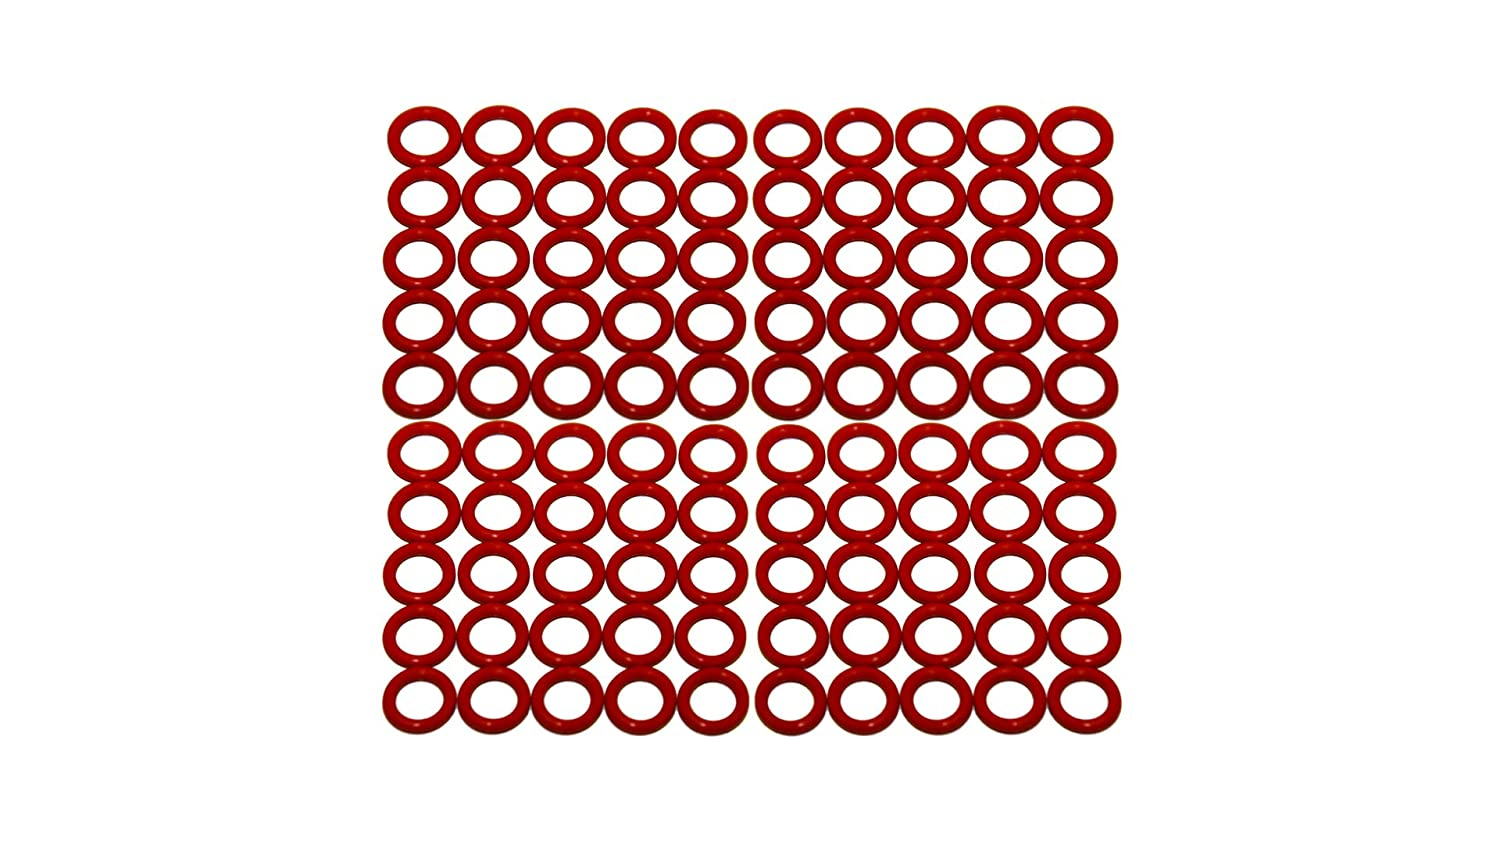 Sterling Seal ORSIL214x100 Number-214 Standard Silicone O-Ring has Excellent Resistance to Oxygen, Ozone and Sunlight, Vinyl Methyl Silicone, 70 Durometer Hardness, 1